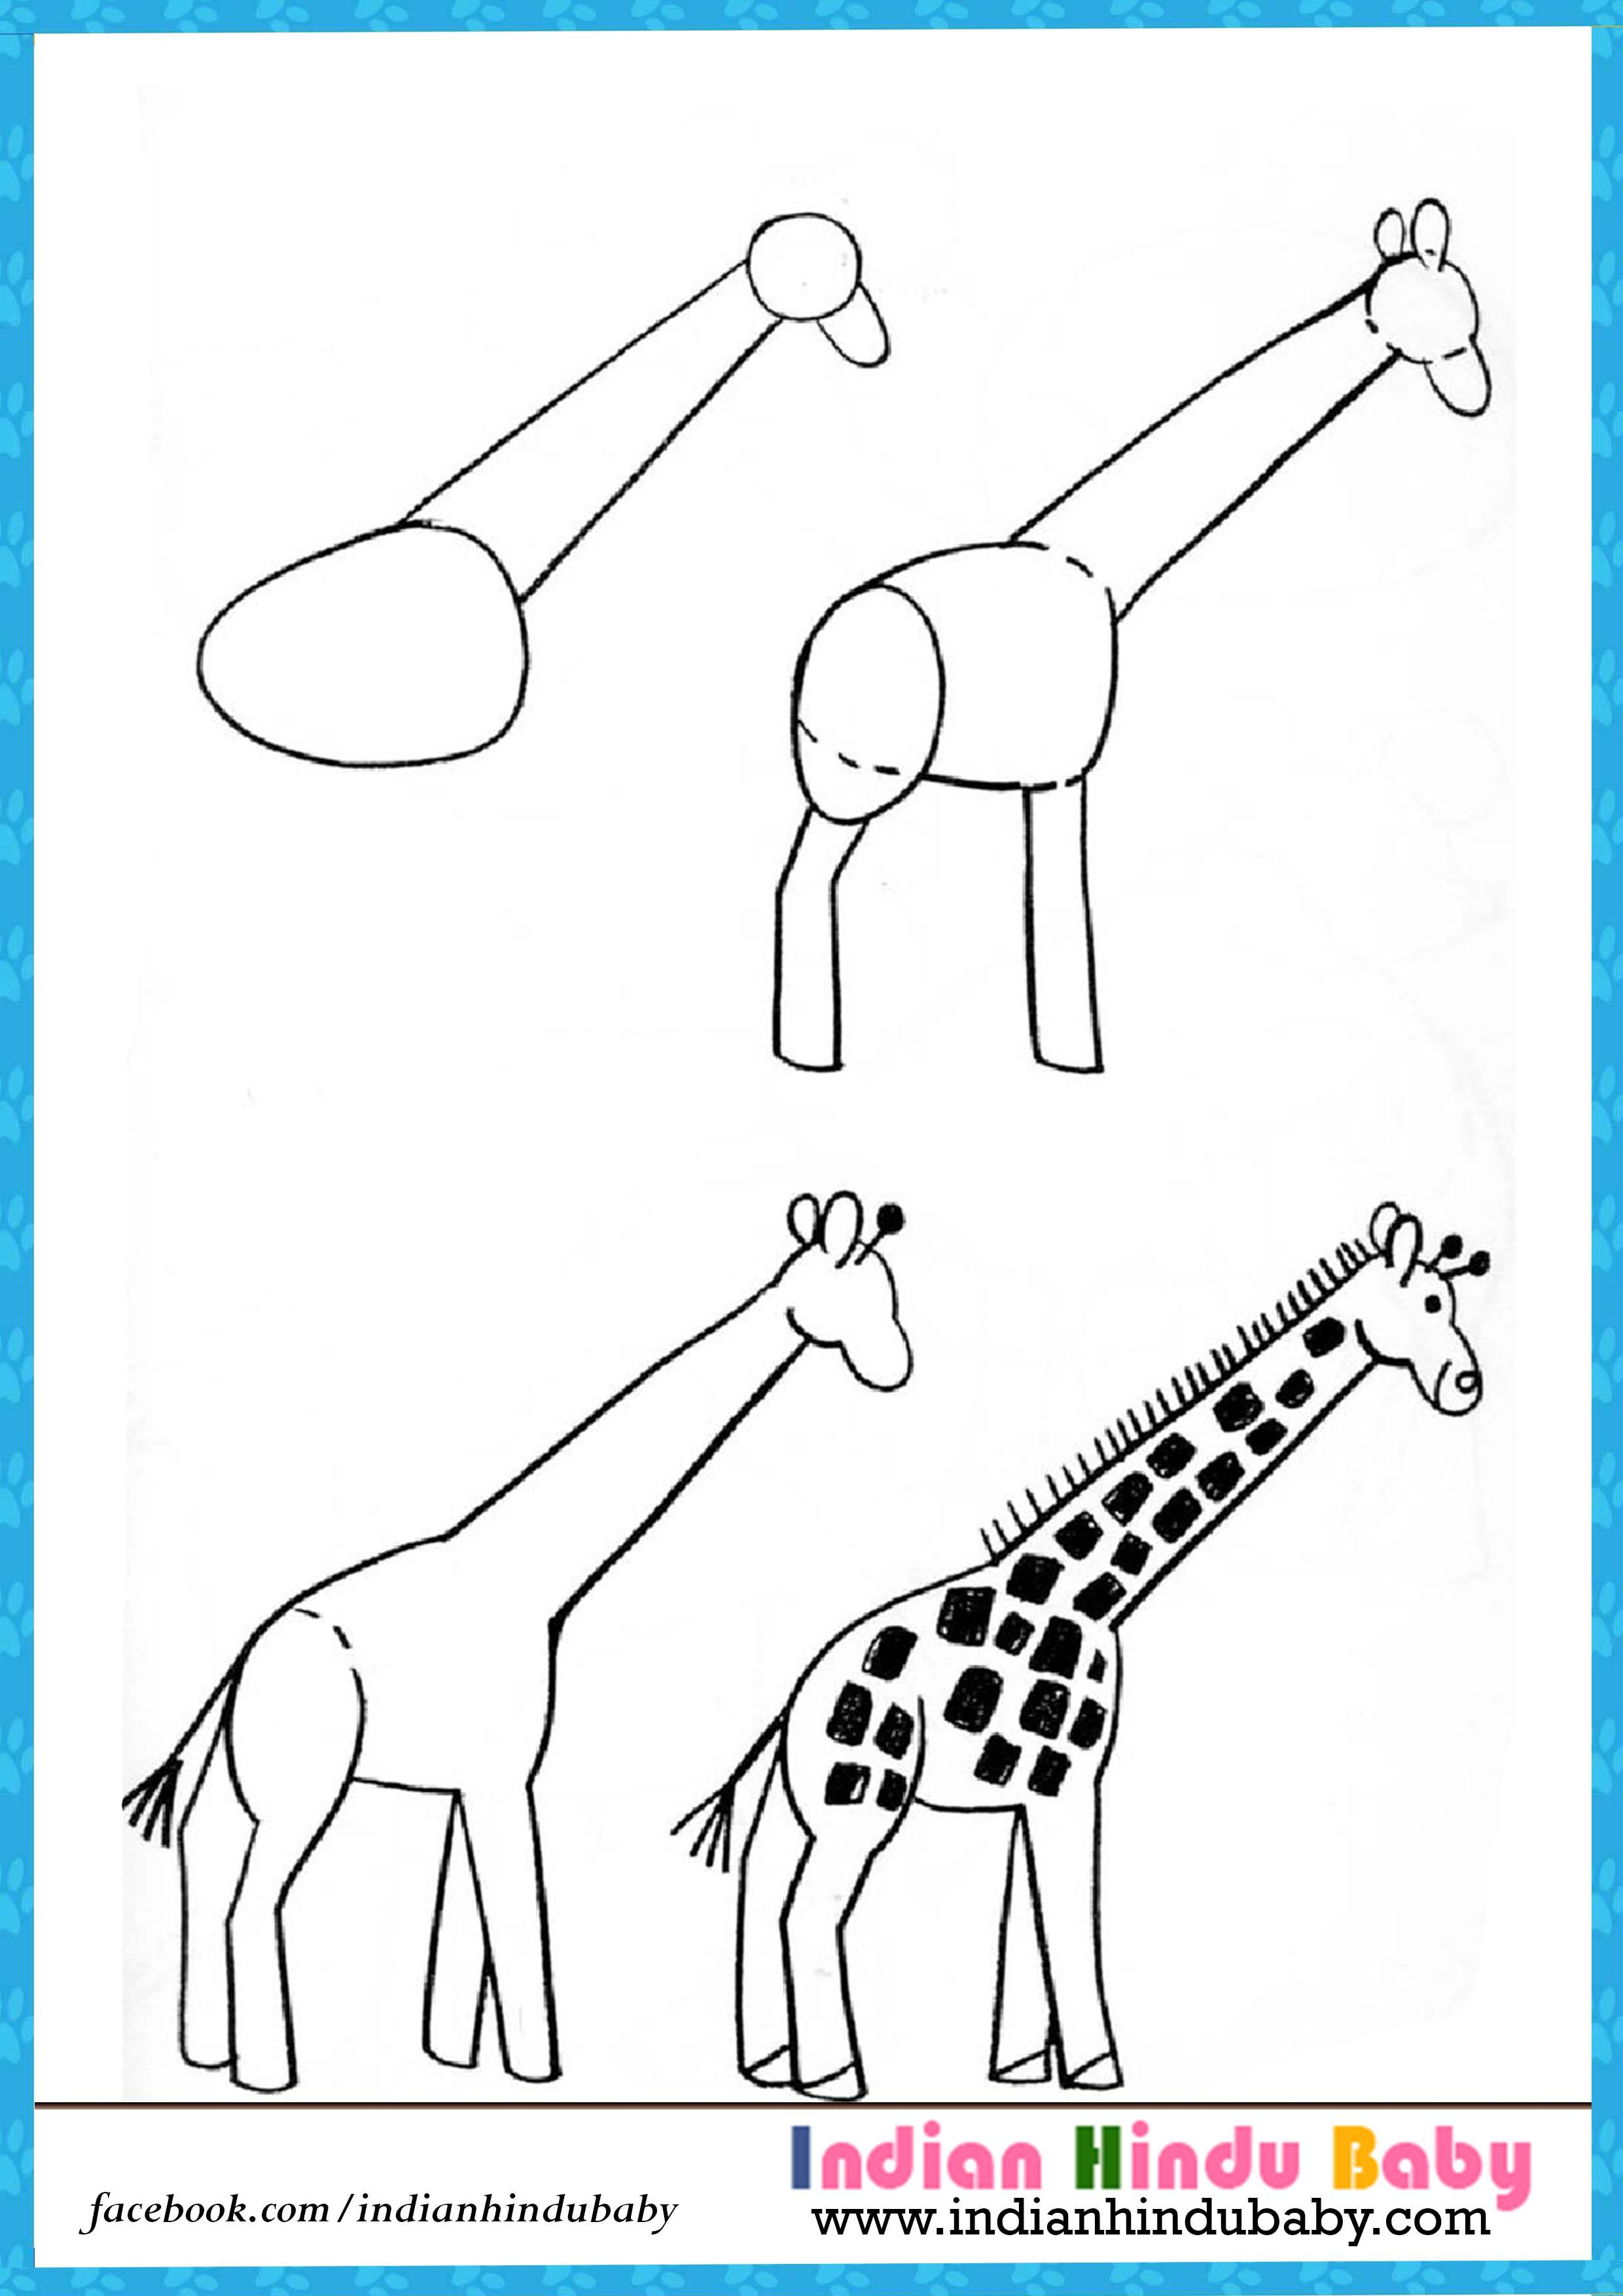 Teach your kid to draw Girrafe with simple drawing tips https